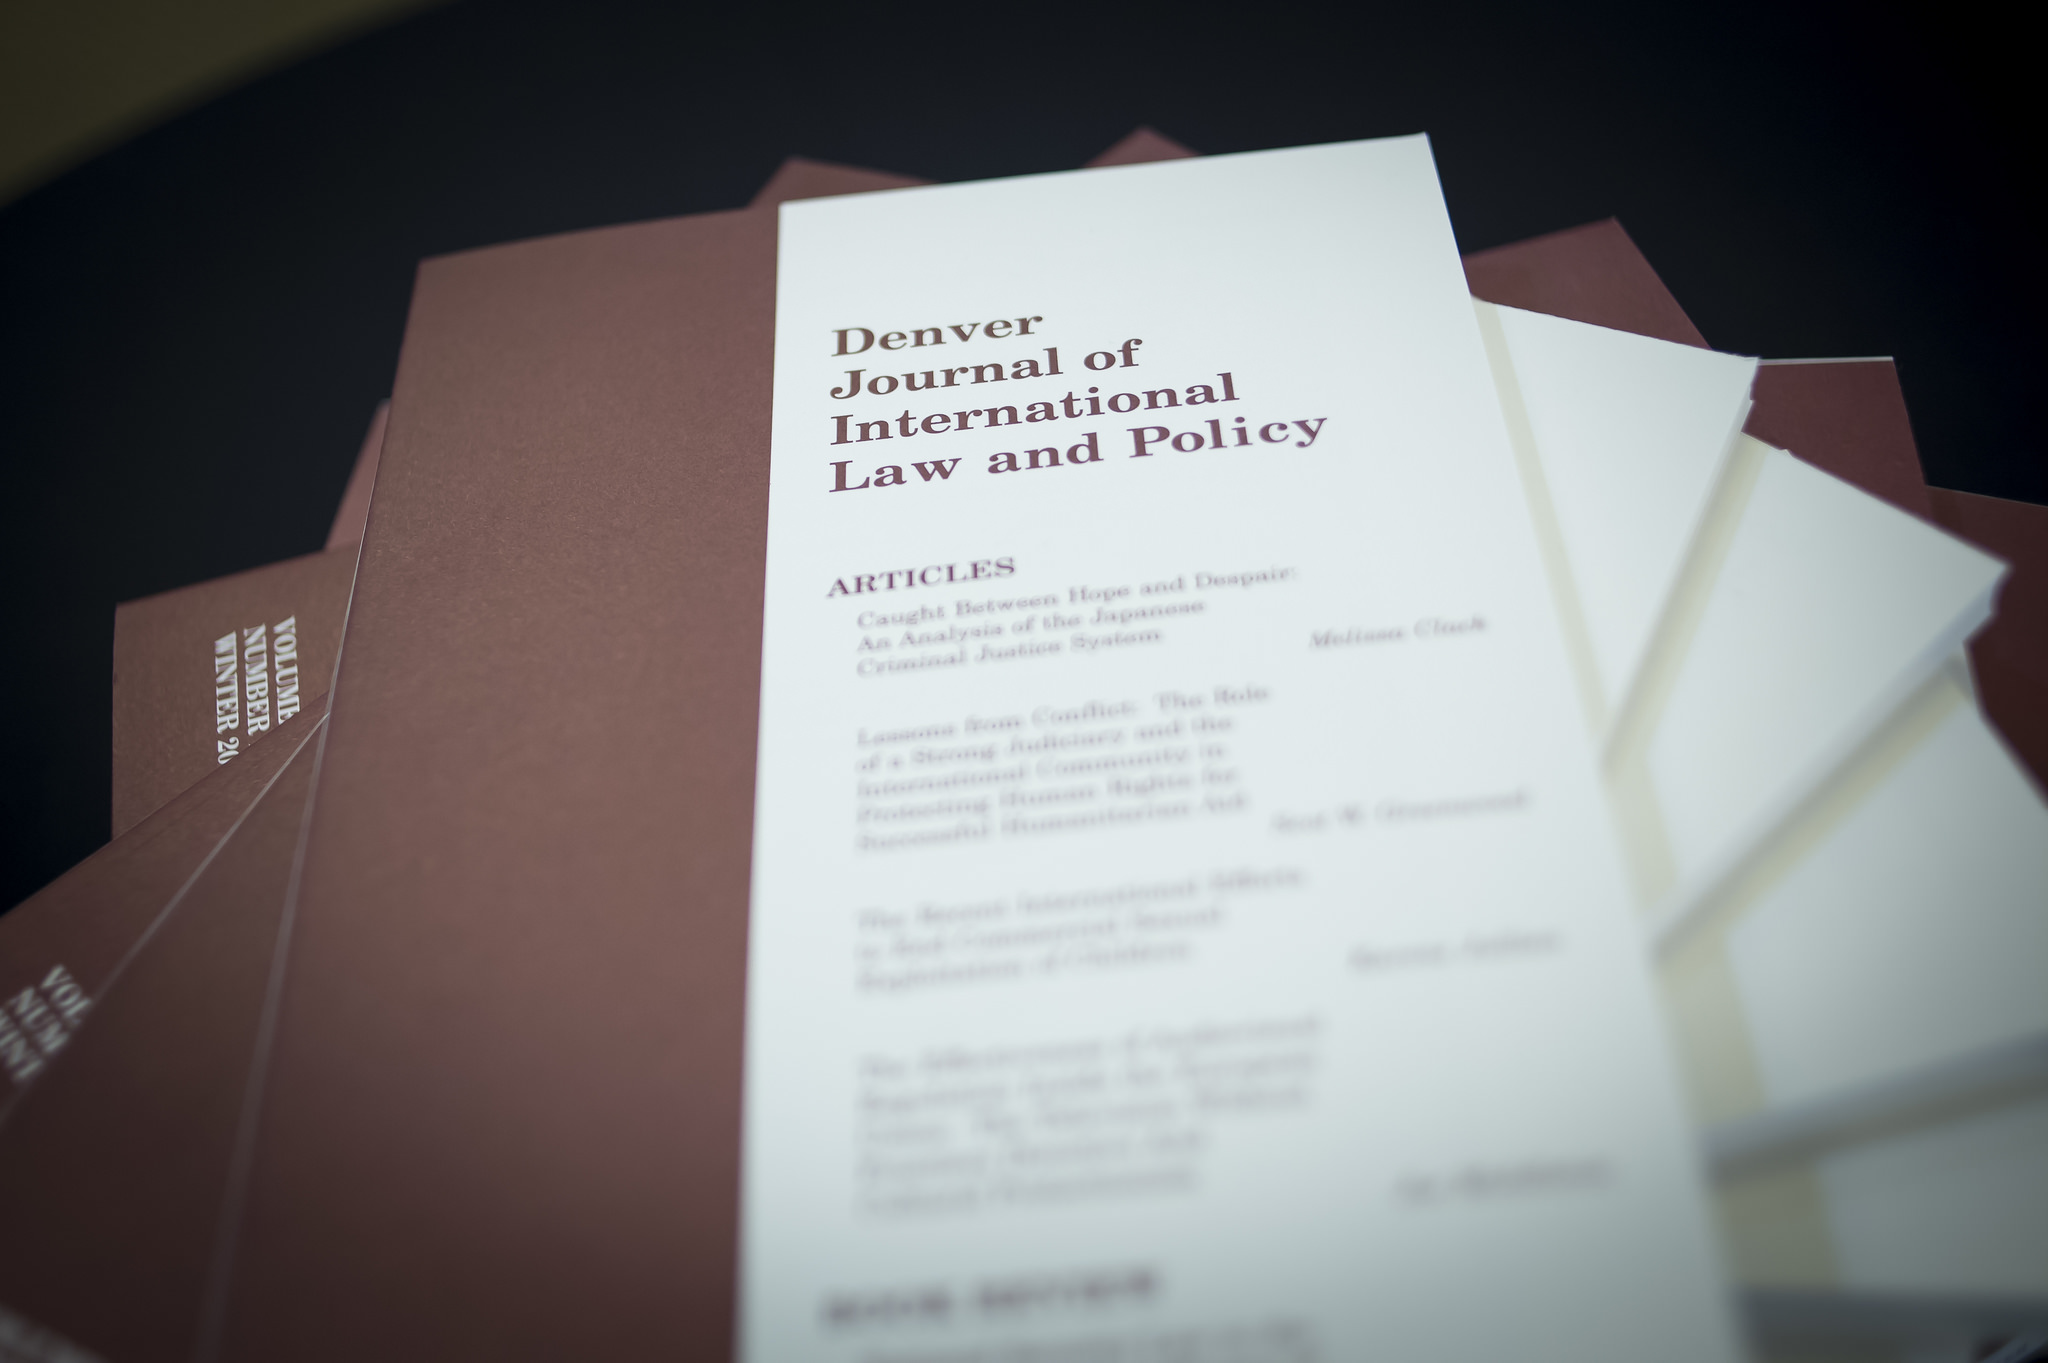 Image of the Journal